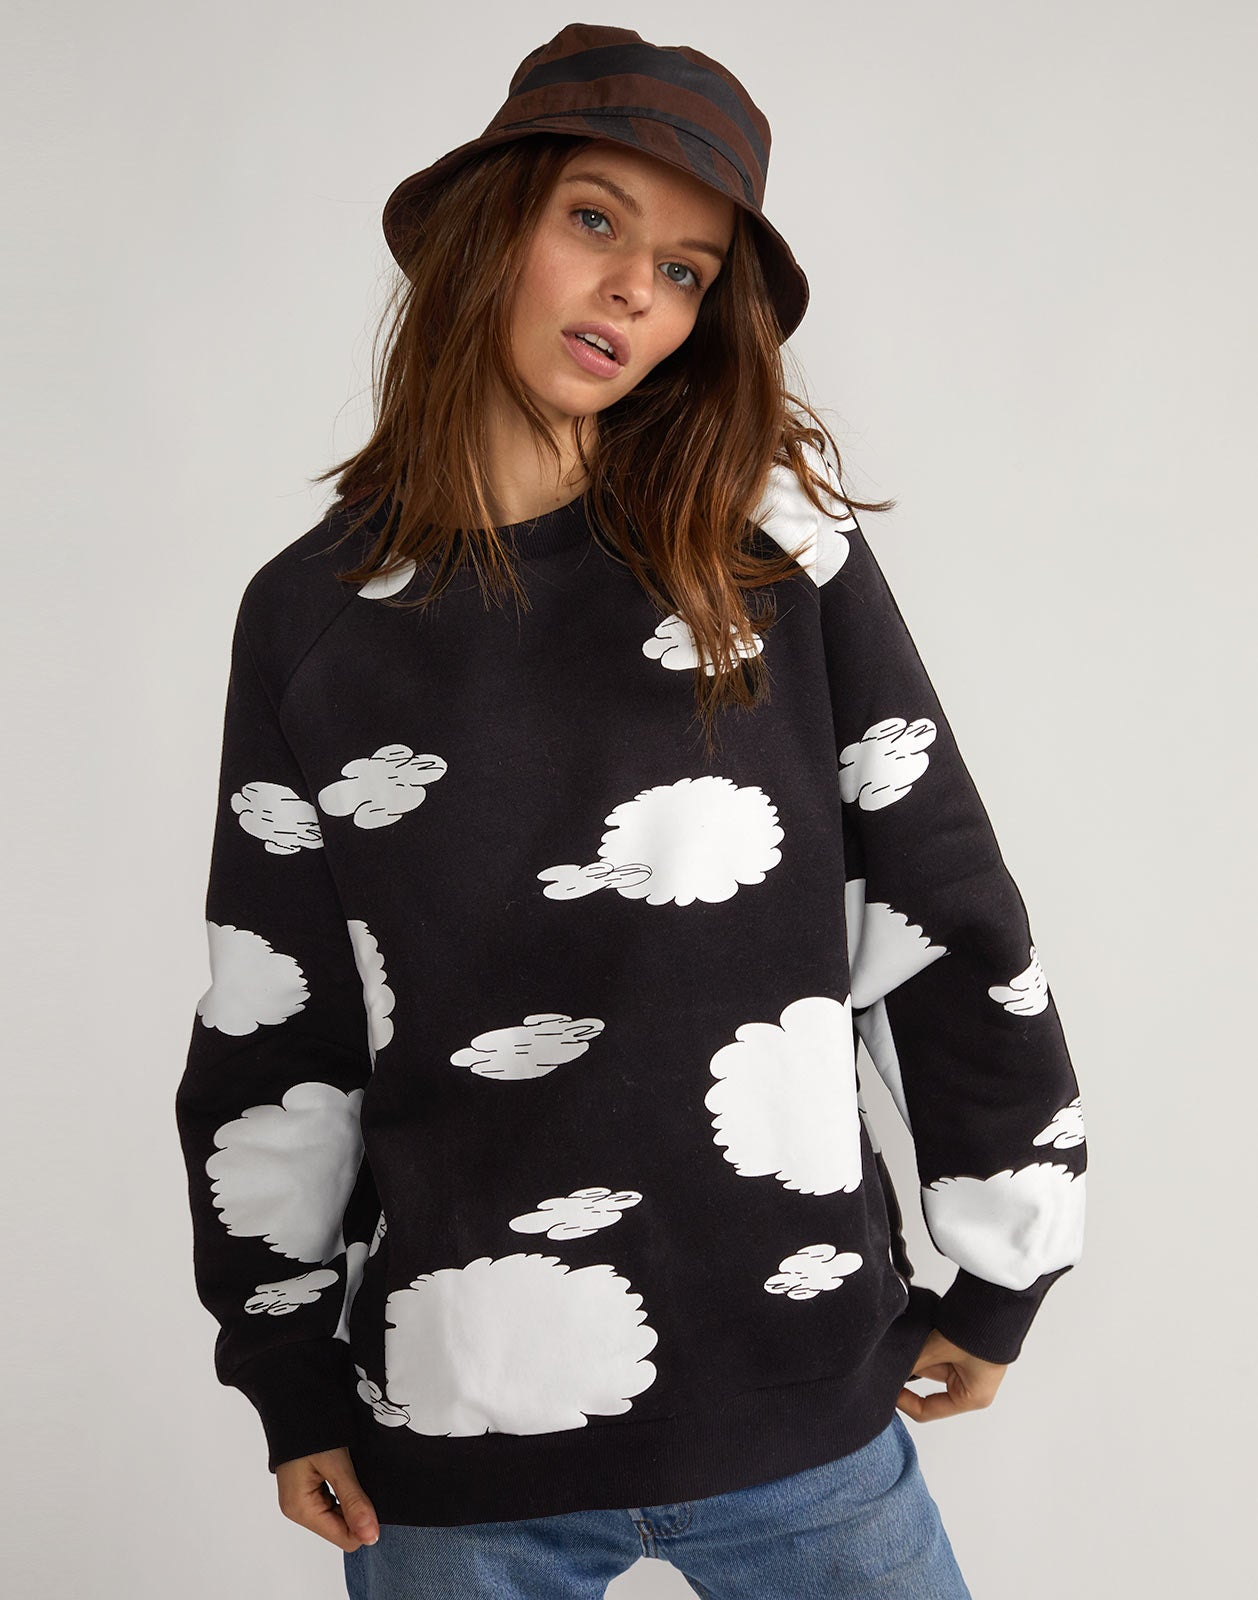 Cloud print sweatshirt from the Rowley x Melet capsule collection.